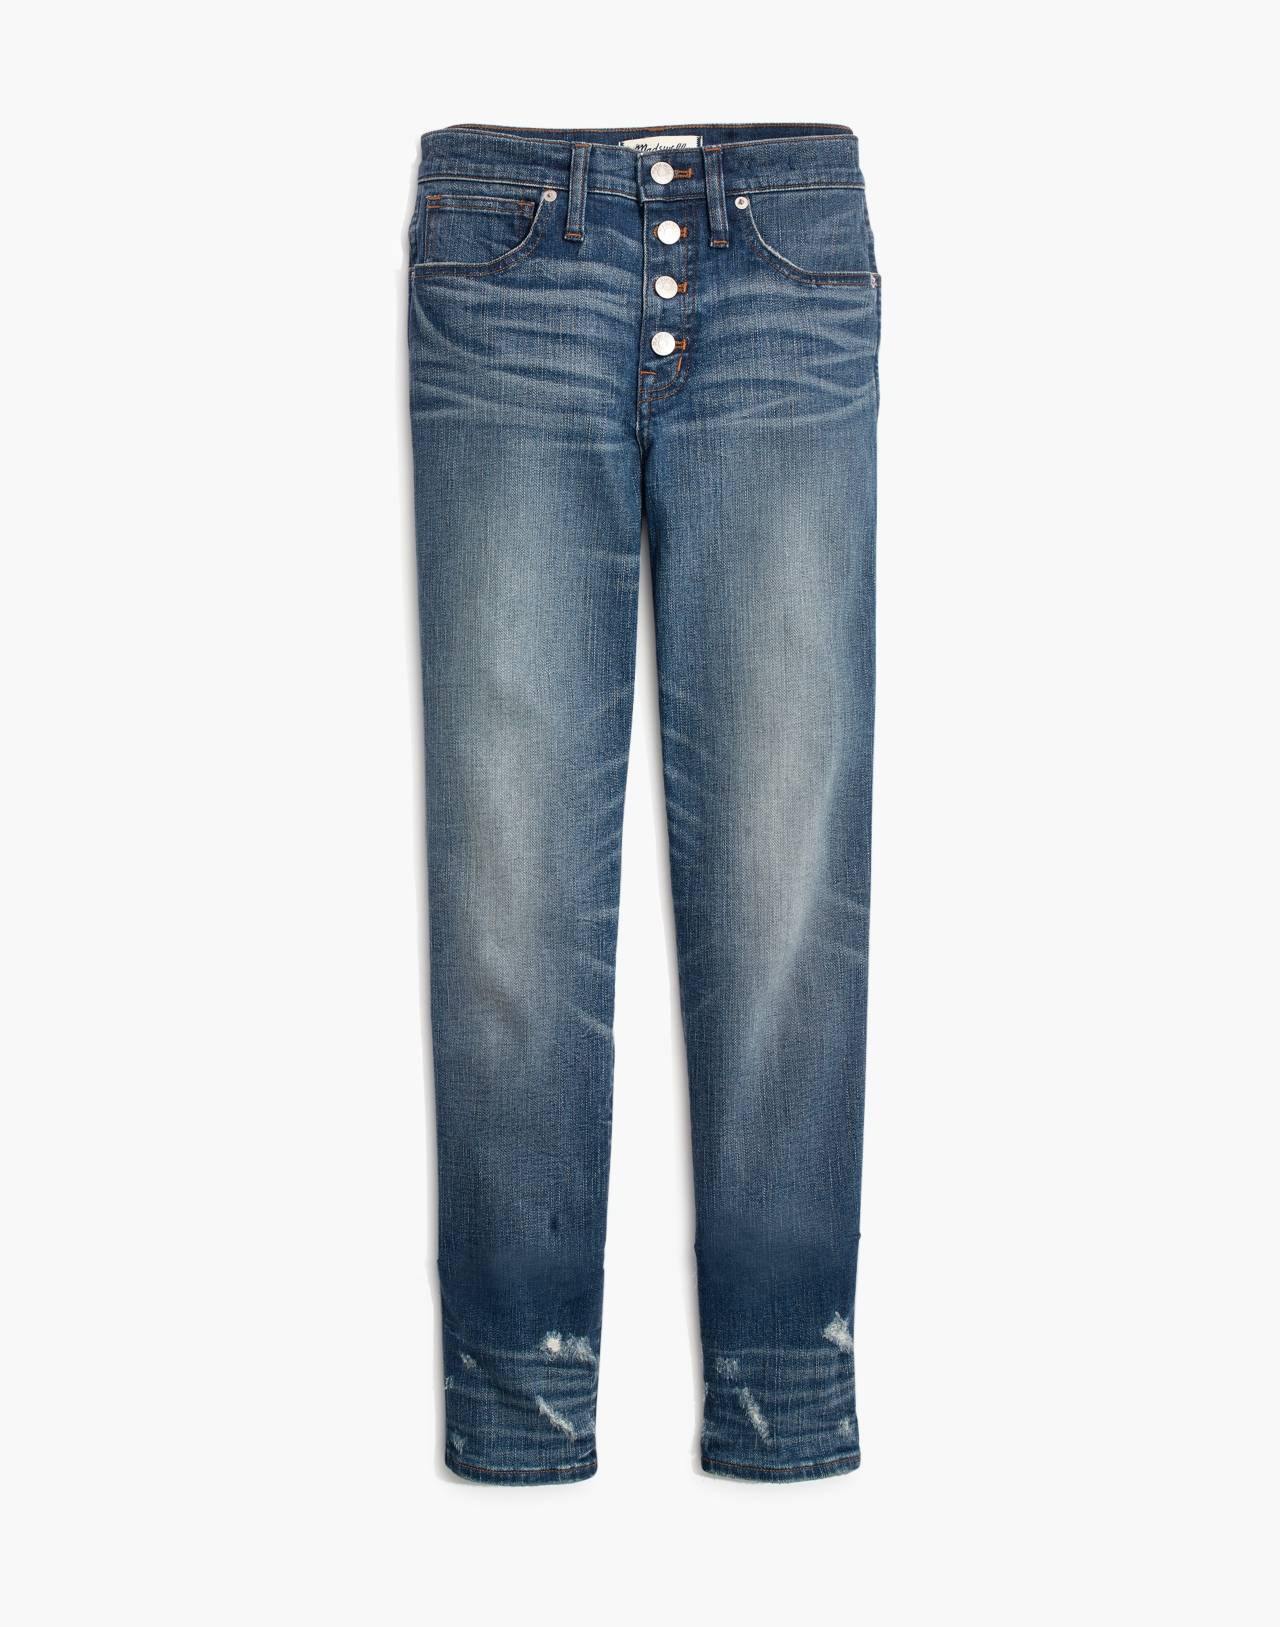 Tall Slim Straight Jeans: Distressed Button-Front Edition in wellmoor image 4